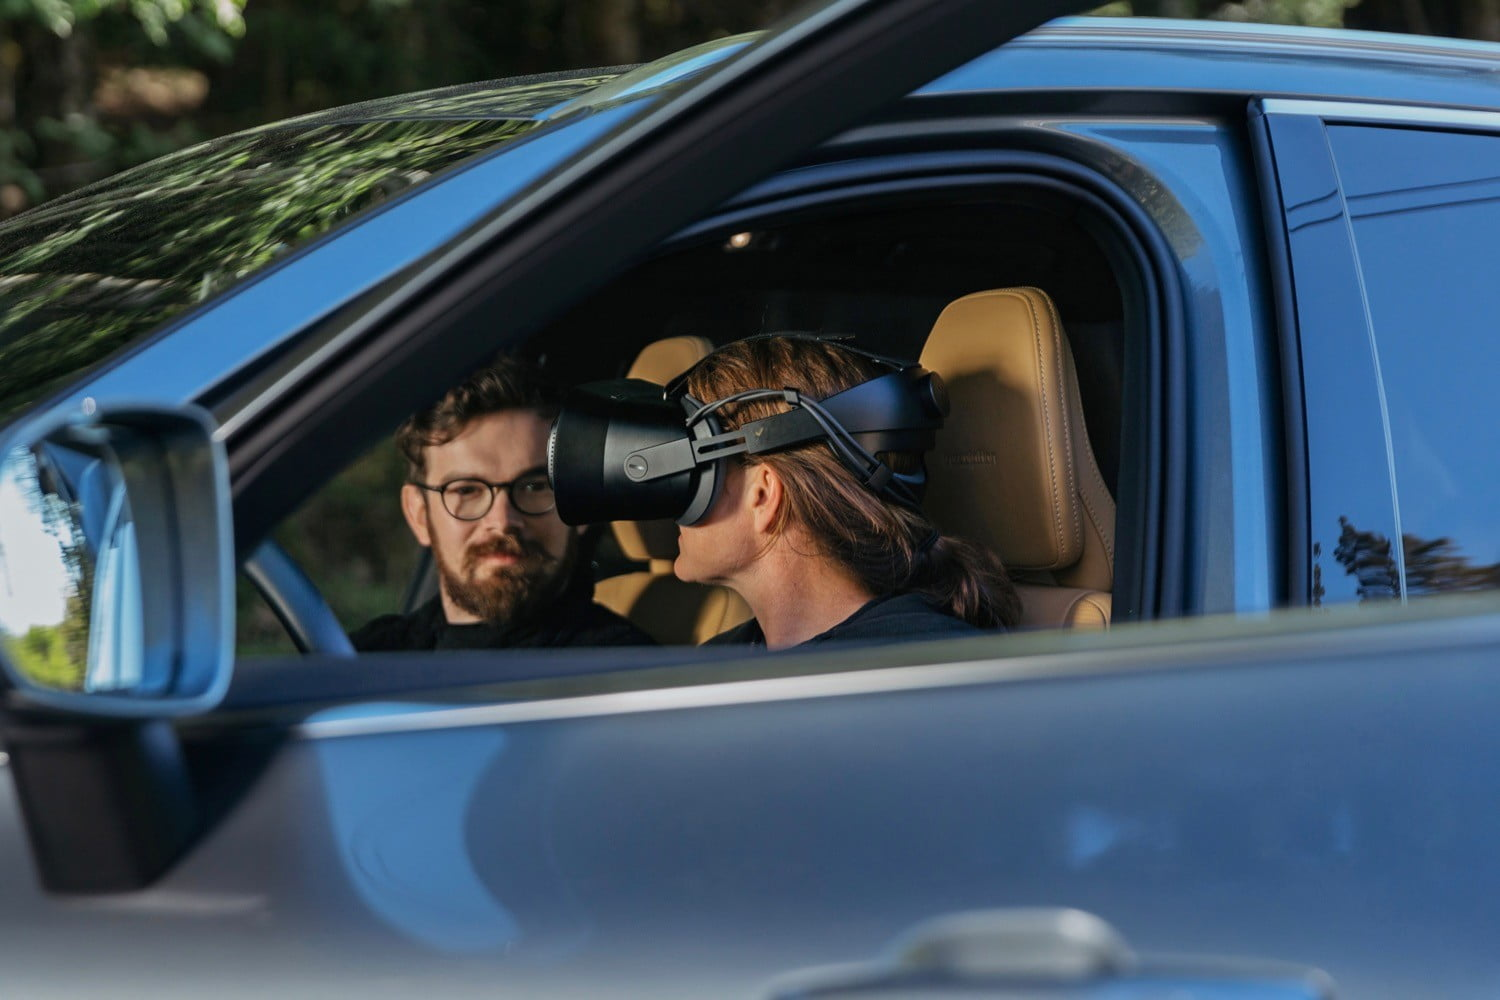 Volvo Wants To Use Augmented Reality To Help Design Future